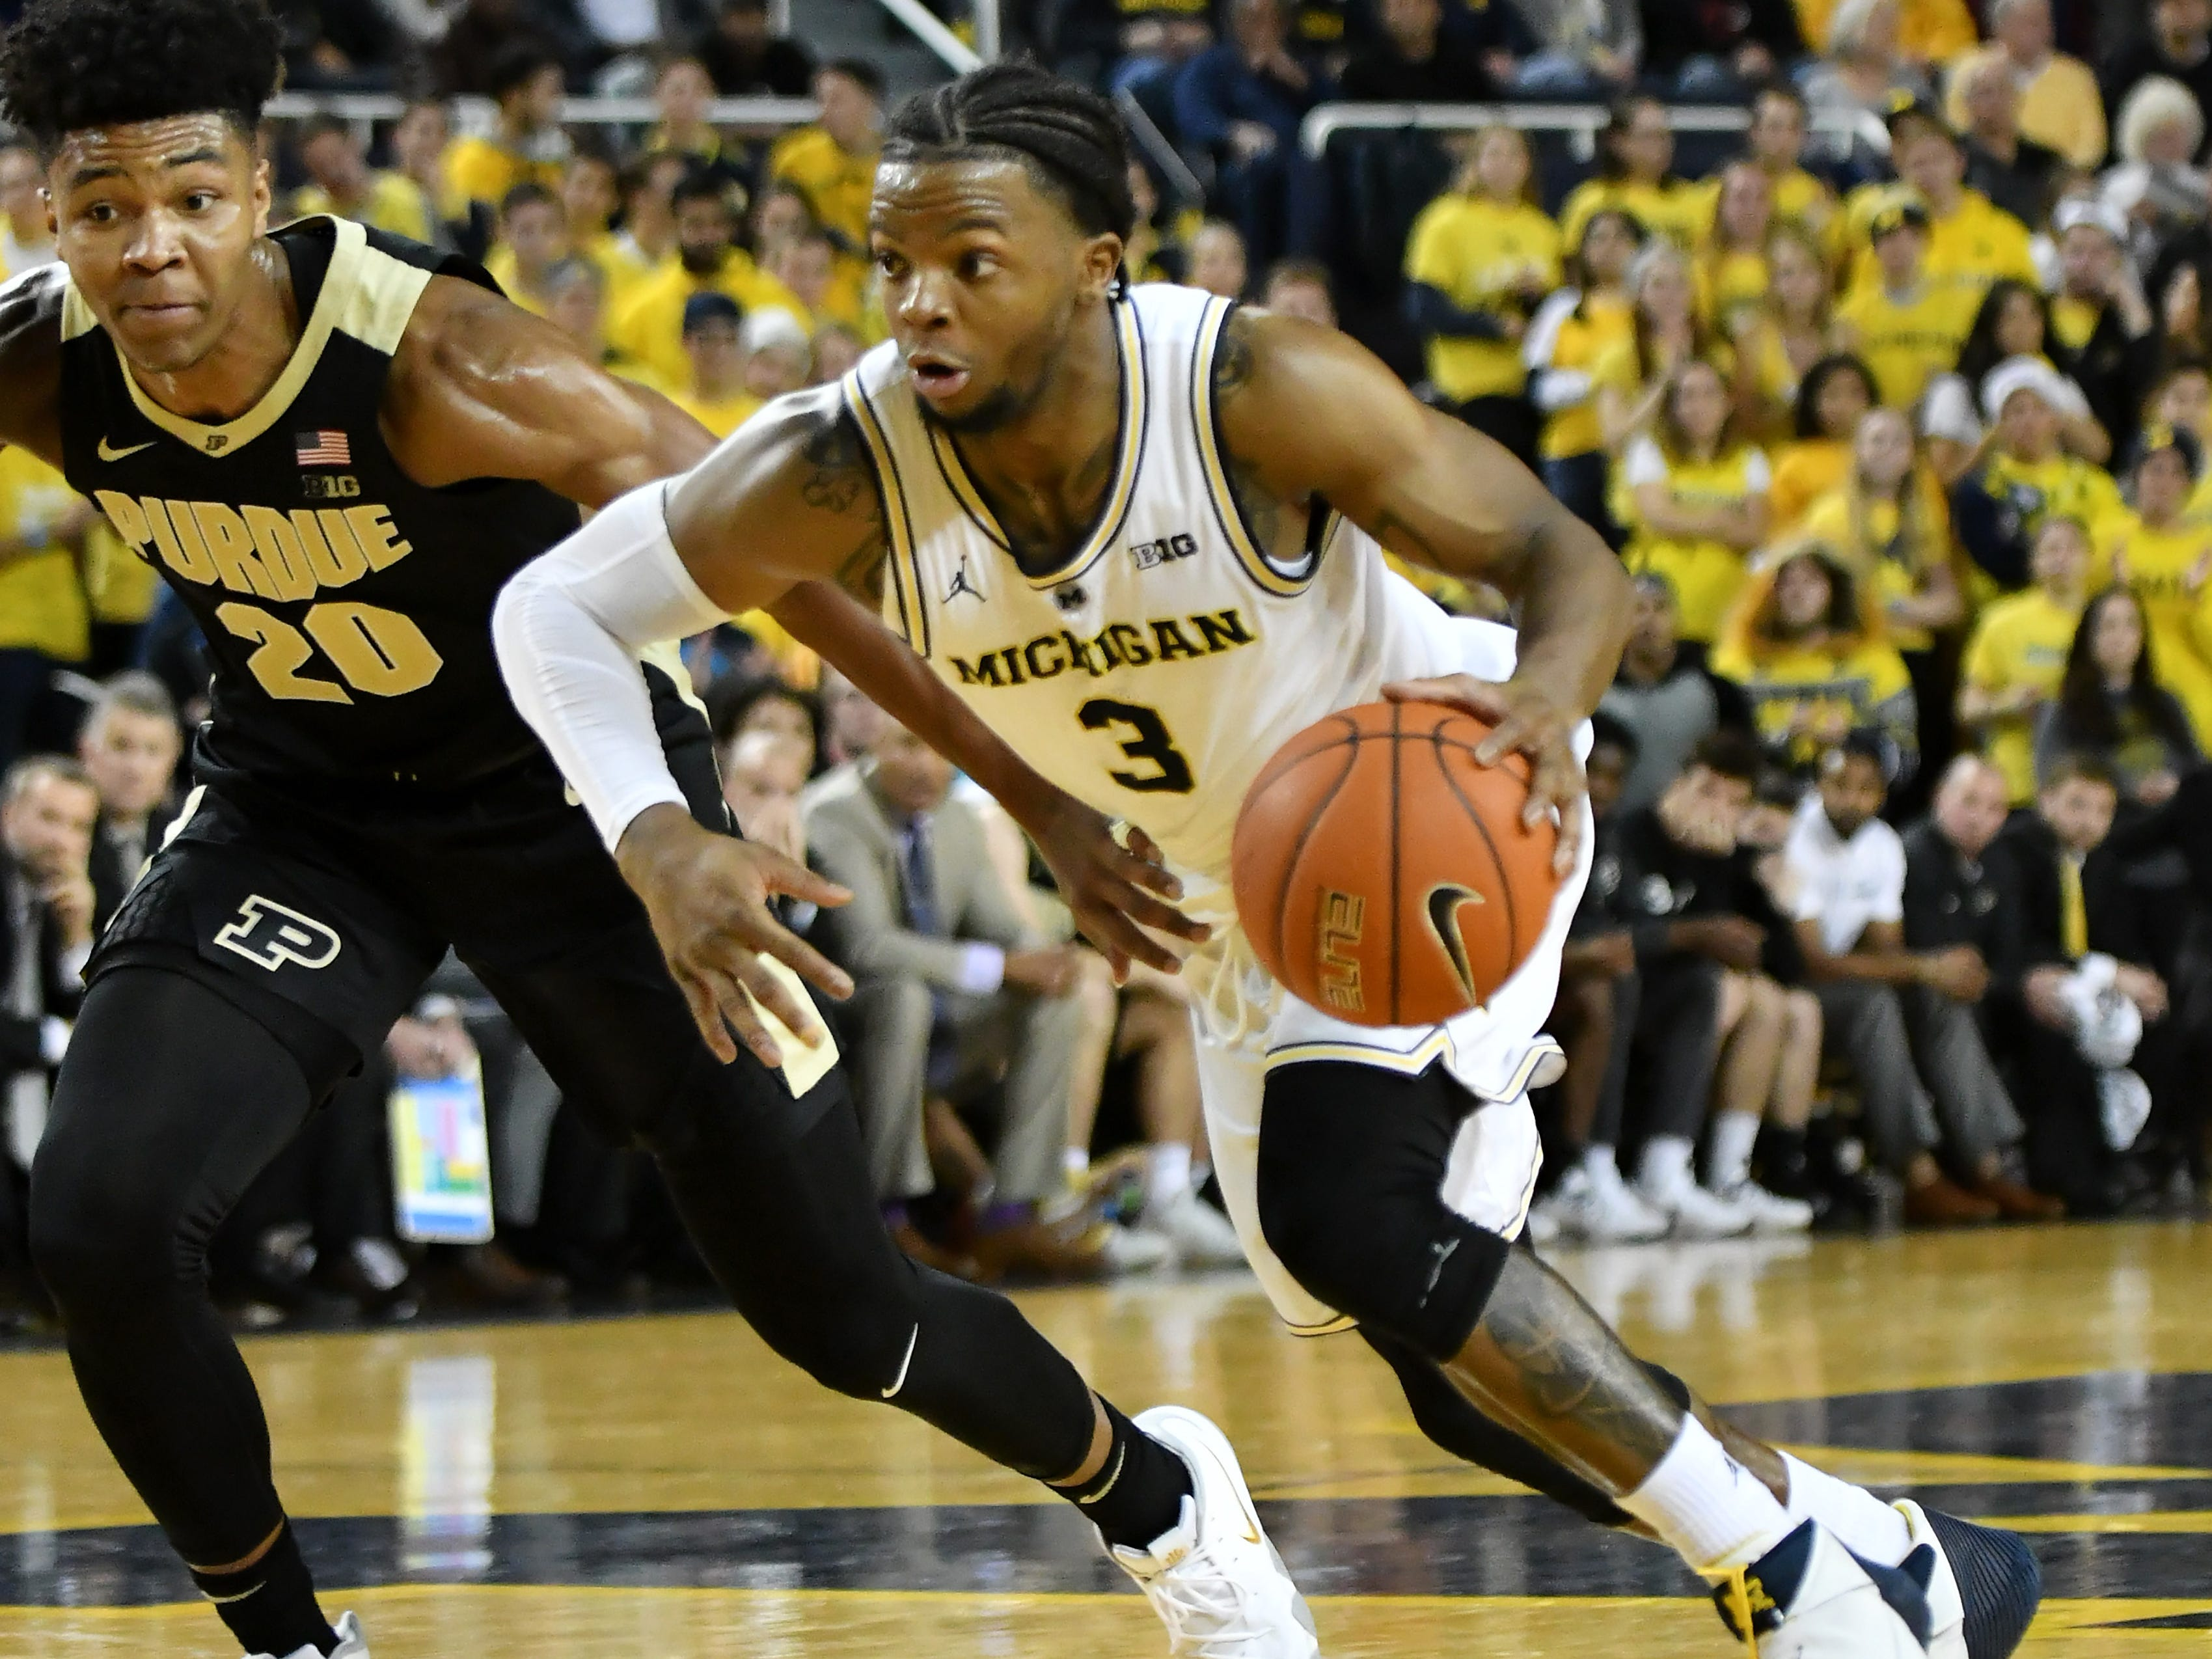 Michigan guard Zavier Simpson (3) pushes alongside Purdue guard Nojel Eastern (20) in the second half.   University of Michigan vs Purdue University at Crisler Arena in Ann Arbor, Mich. on Dec. 1, 2018. Michigan wins, 76-57.